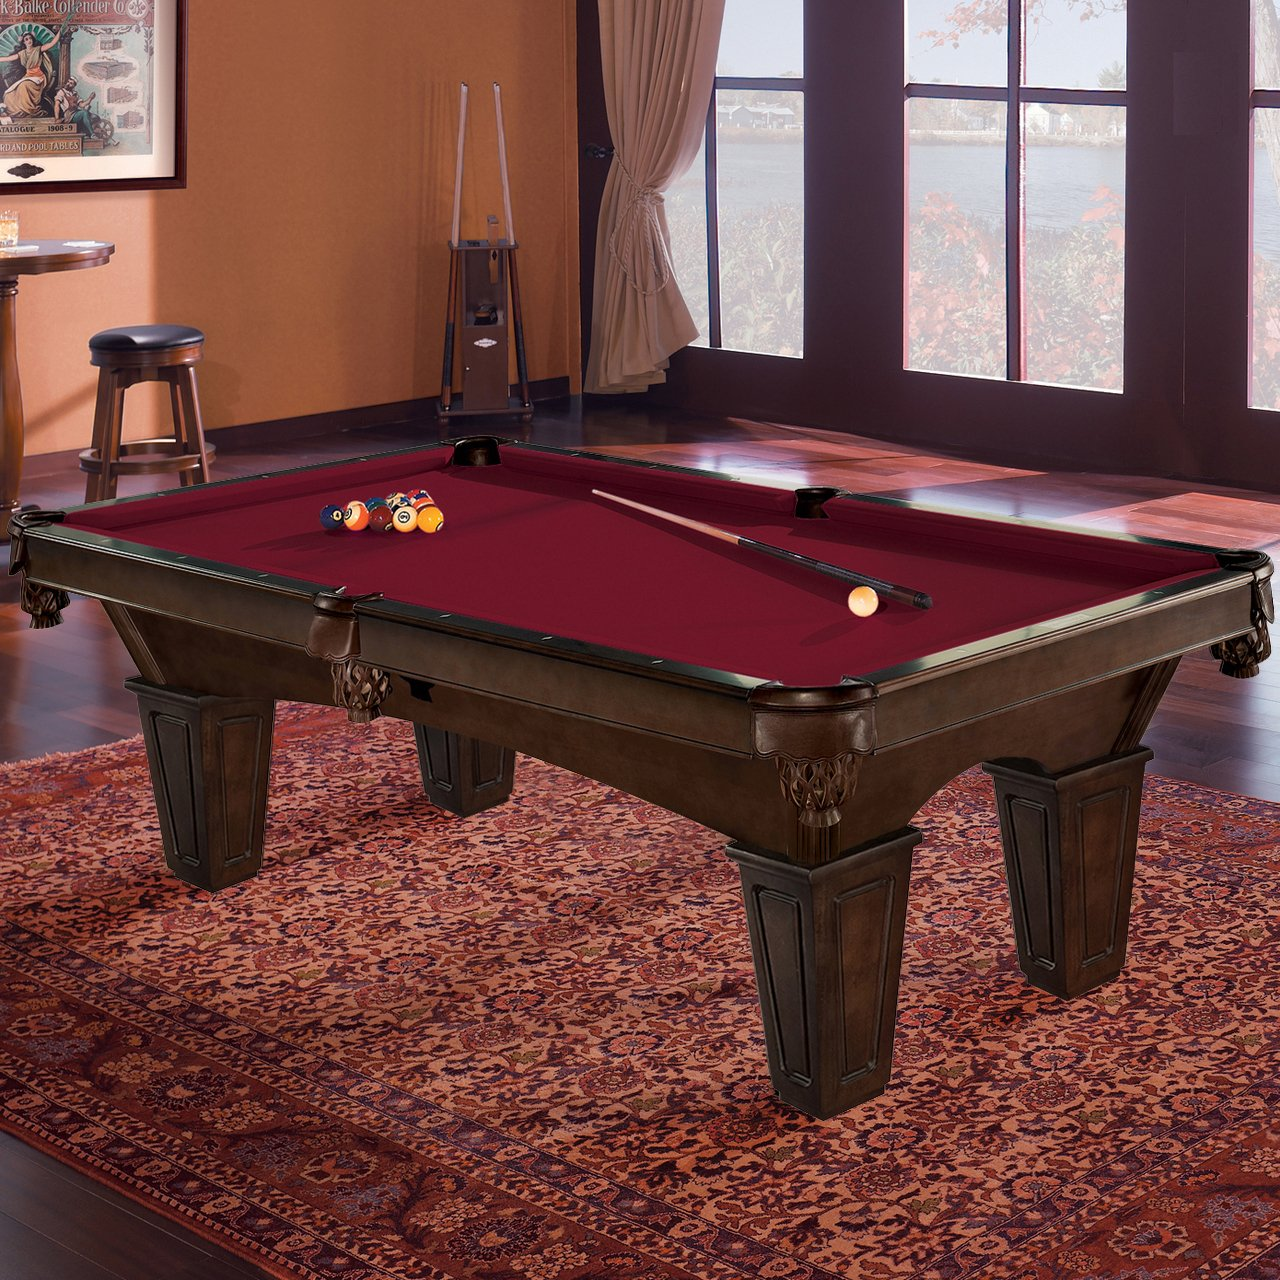 Top Best Brunswick Pool Tables In Reviews Top Best Pro Reviews - Allenton pool table